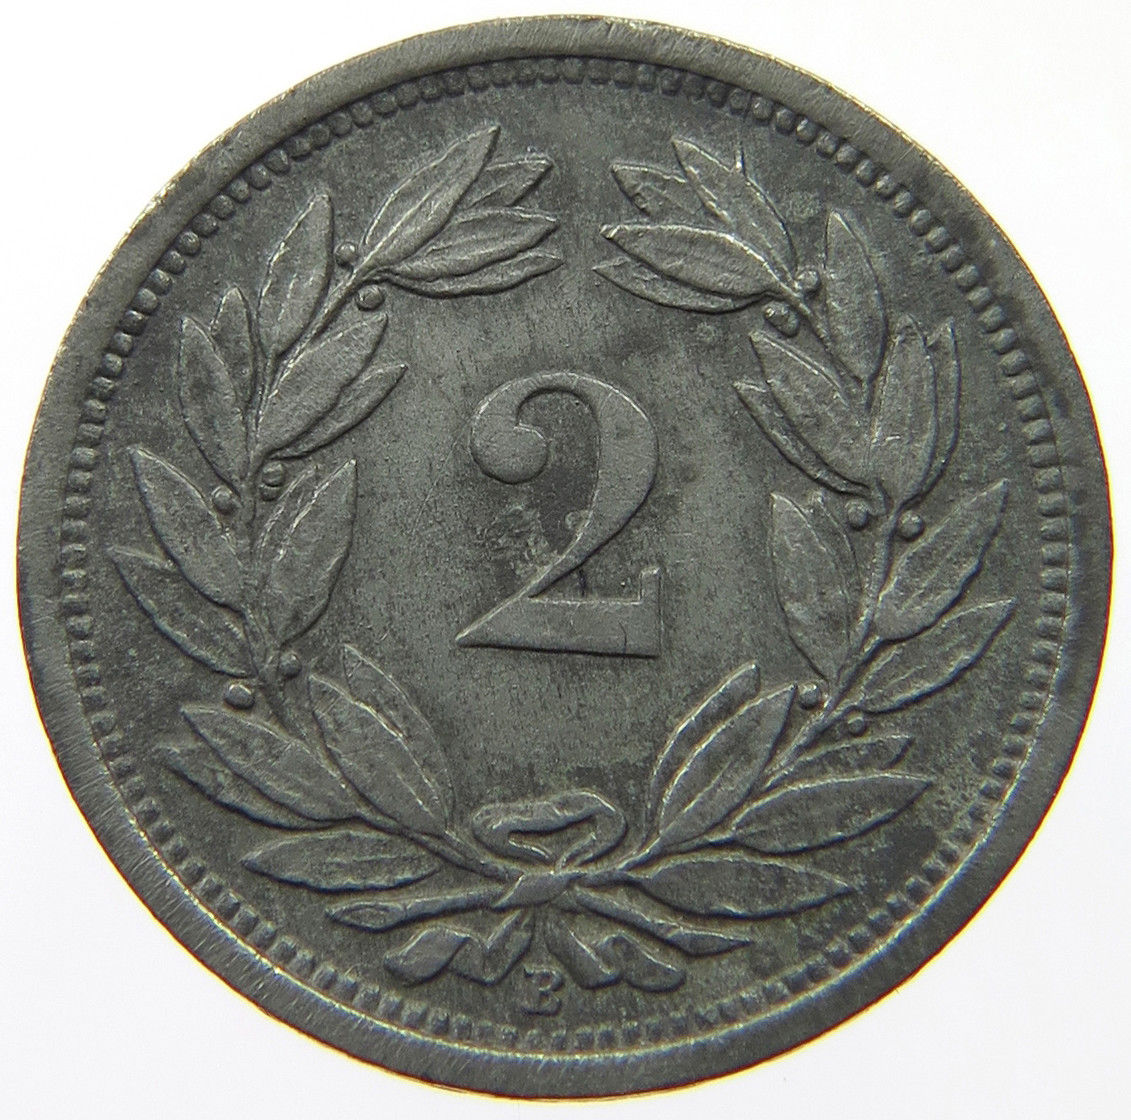 Two Centimes (Rappen) 1943: Photo Switzerland 2 Rappen 1943